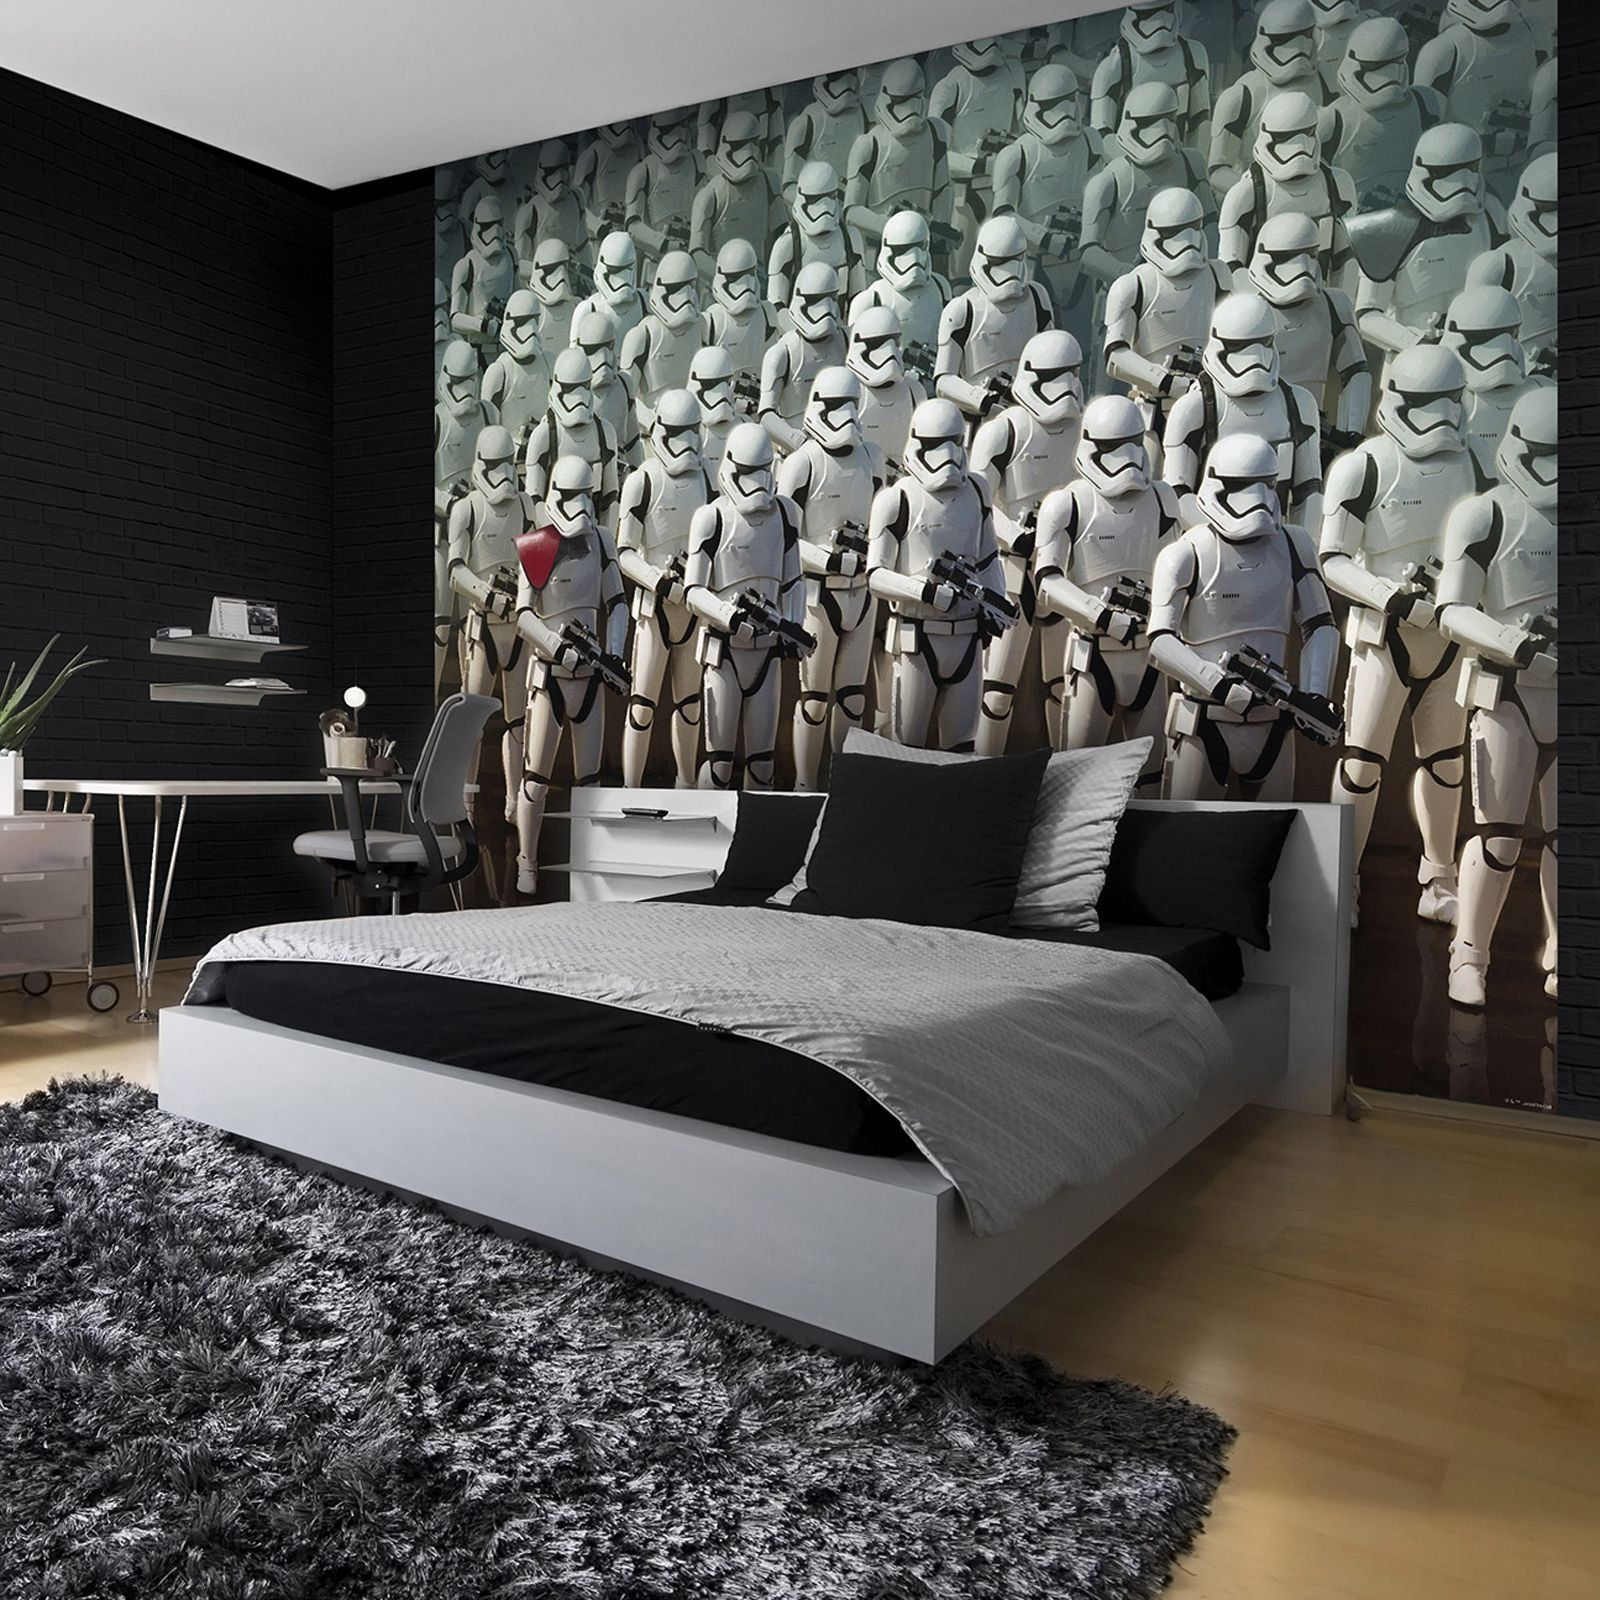 Star wars stormtrooper wall mural dream bedroom star for Boys bedroom mural